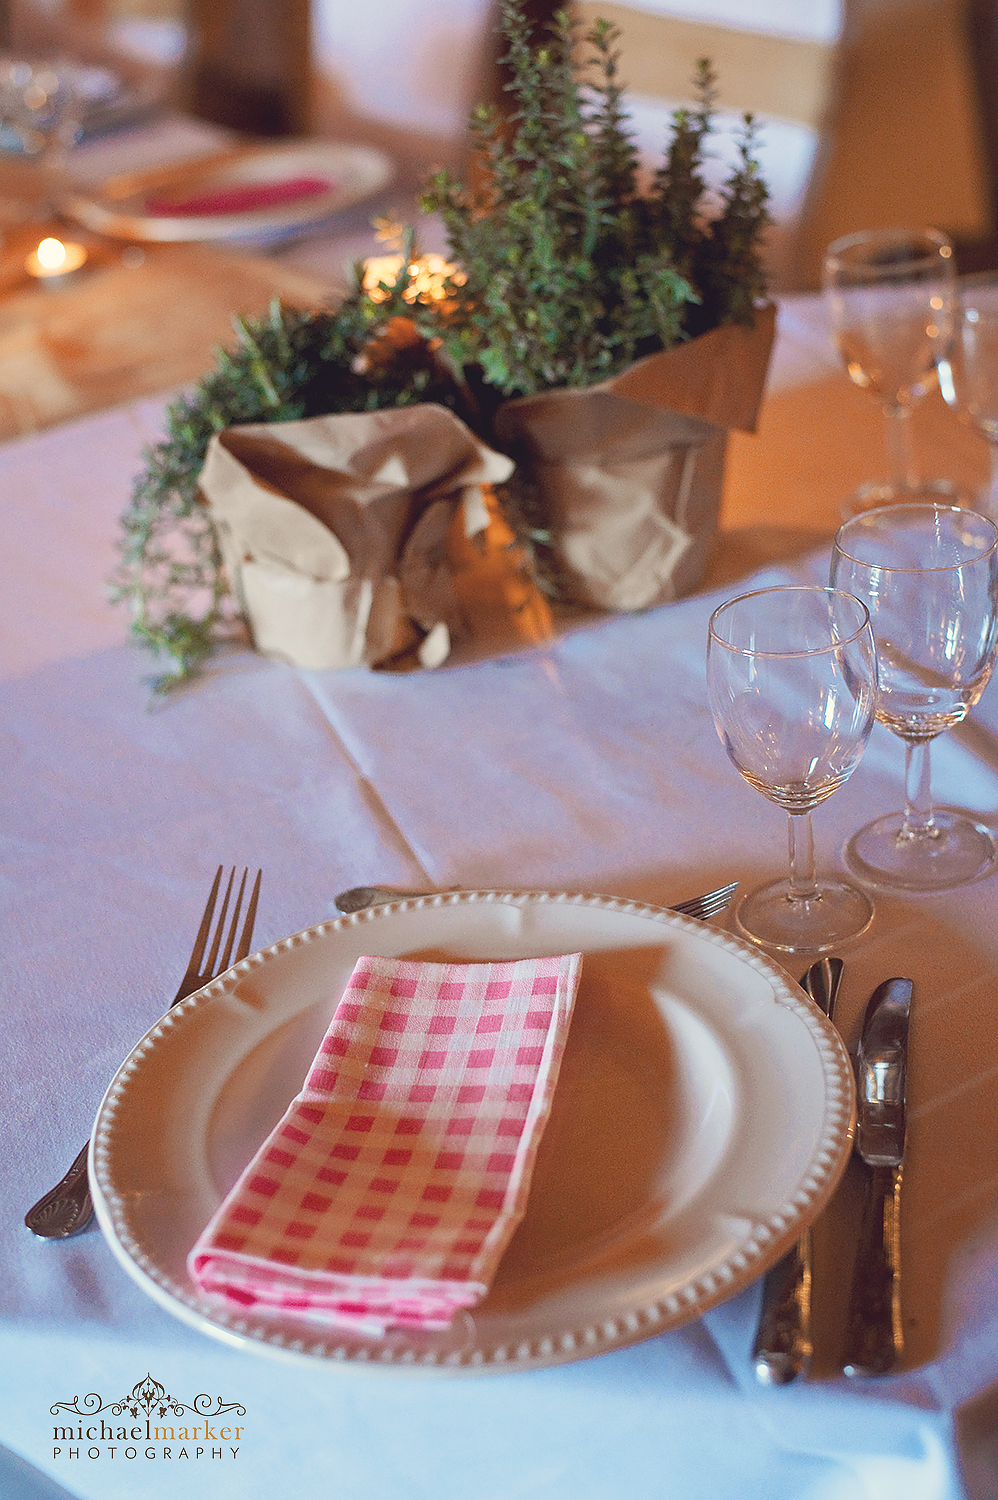 red gingham place setting and herb decoration